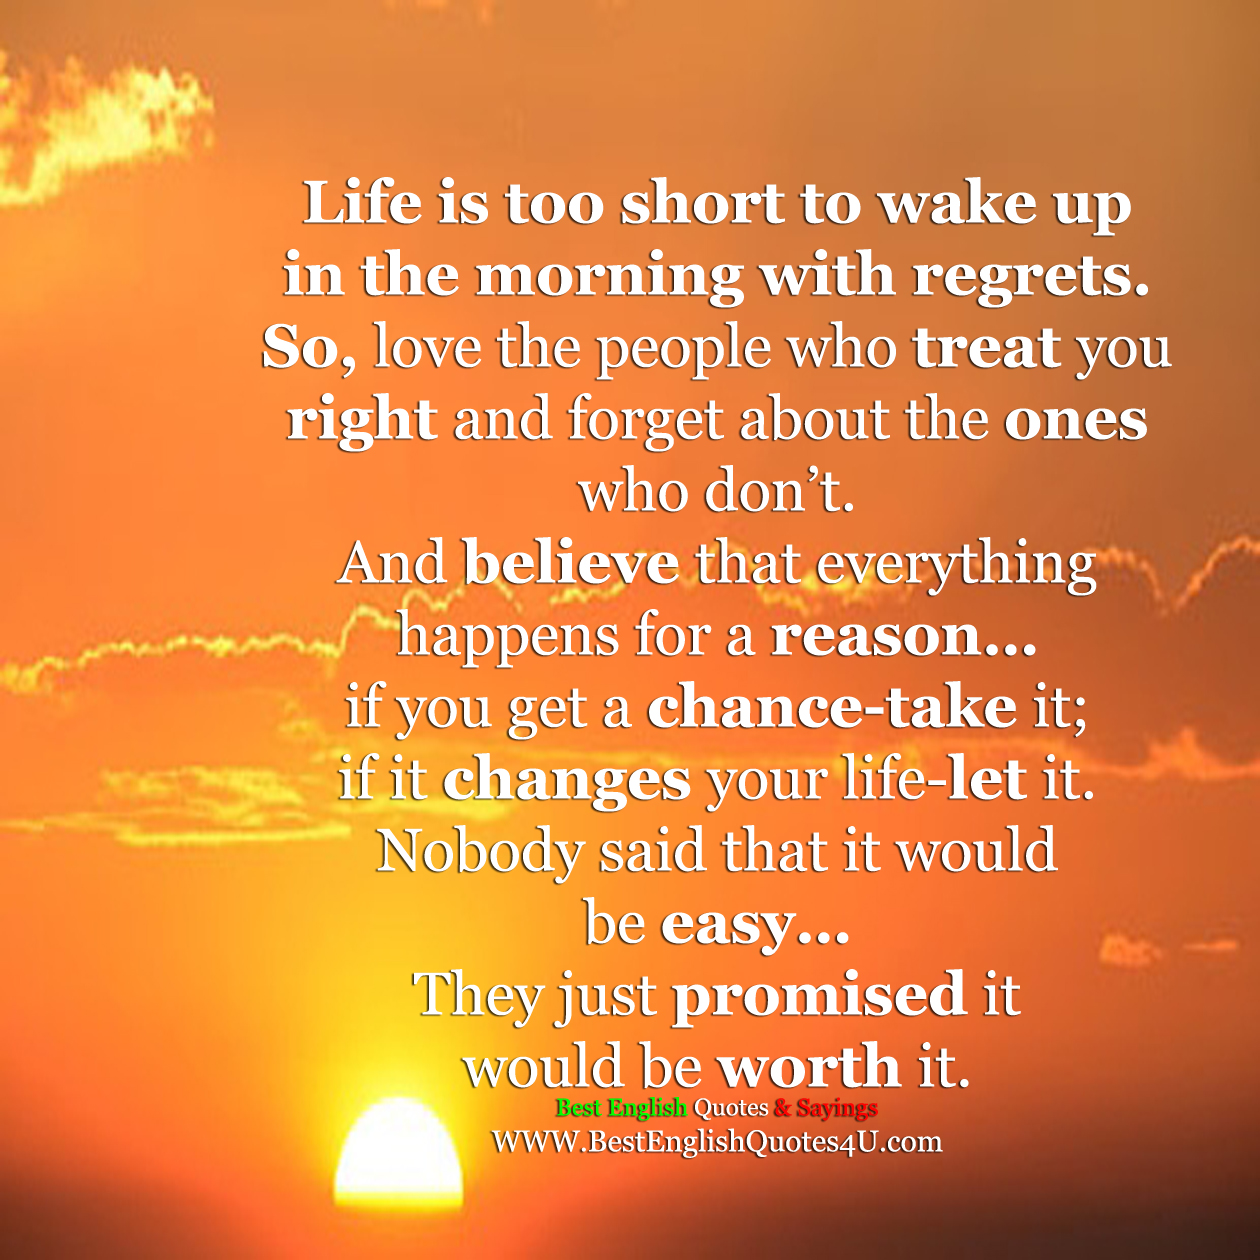 Morning Quotes For Loved Ones Life Is Too Short To Wake Up In The Morning With Regrets Best